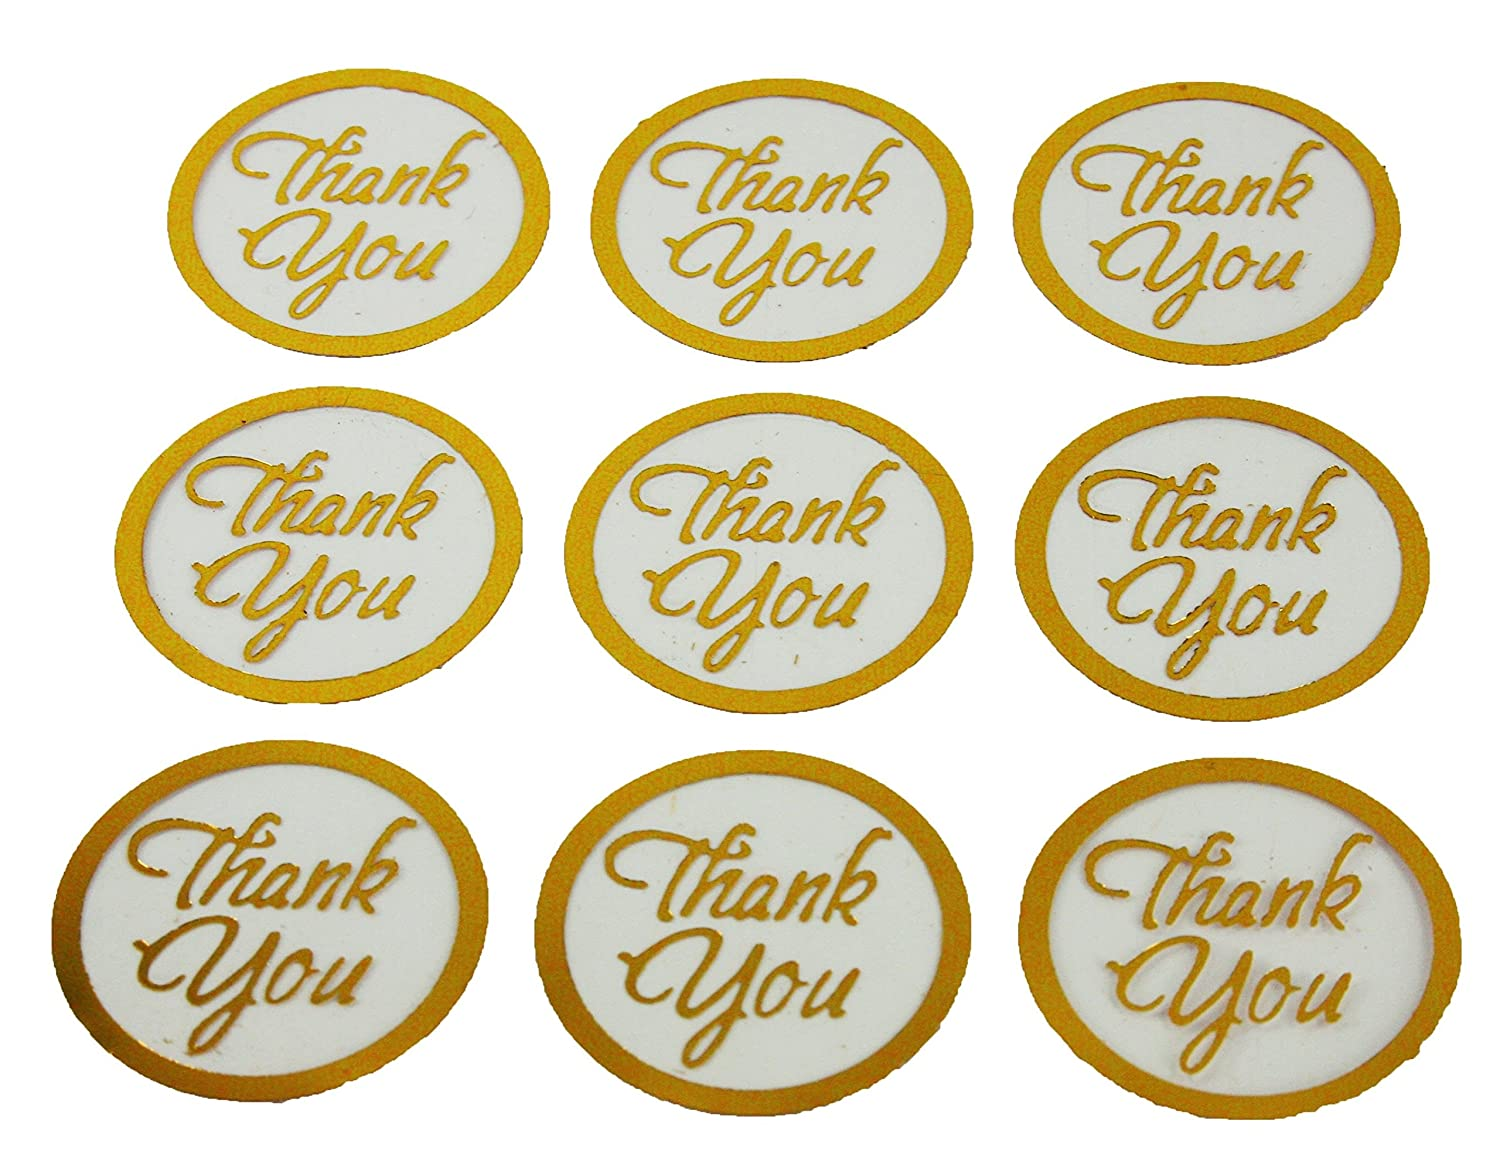 Amazon com 100 gold thank you print with clear background wedding round envelope seal stickers 1 inch diameter